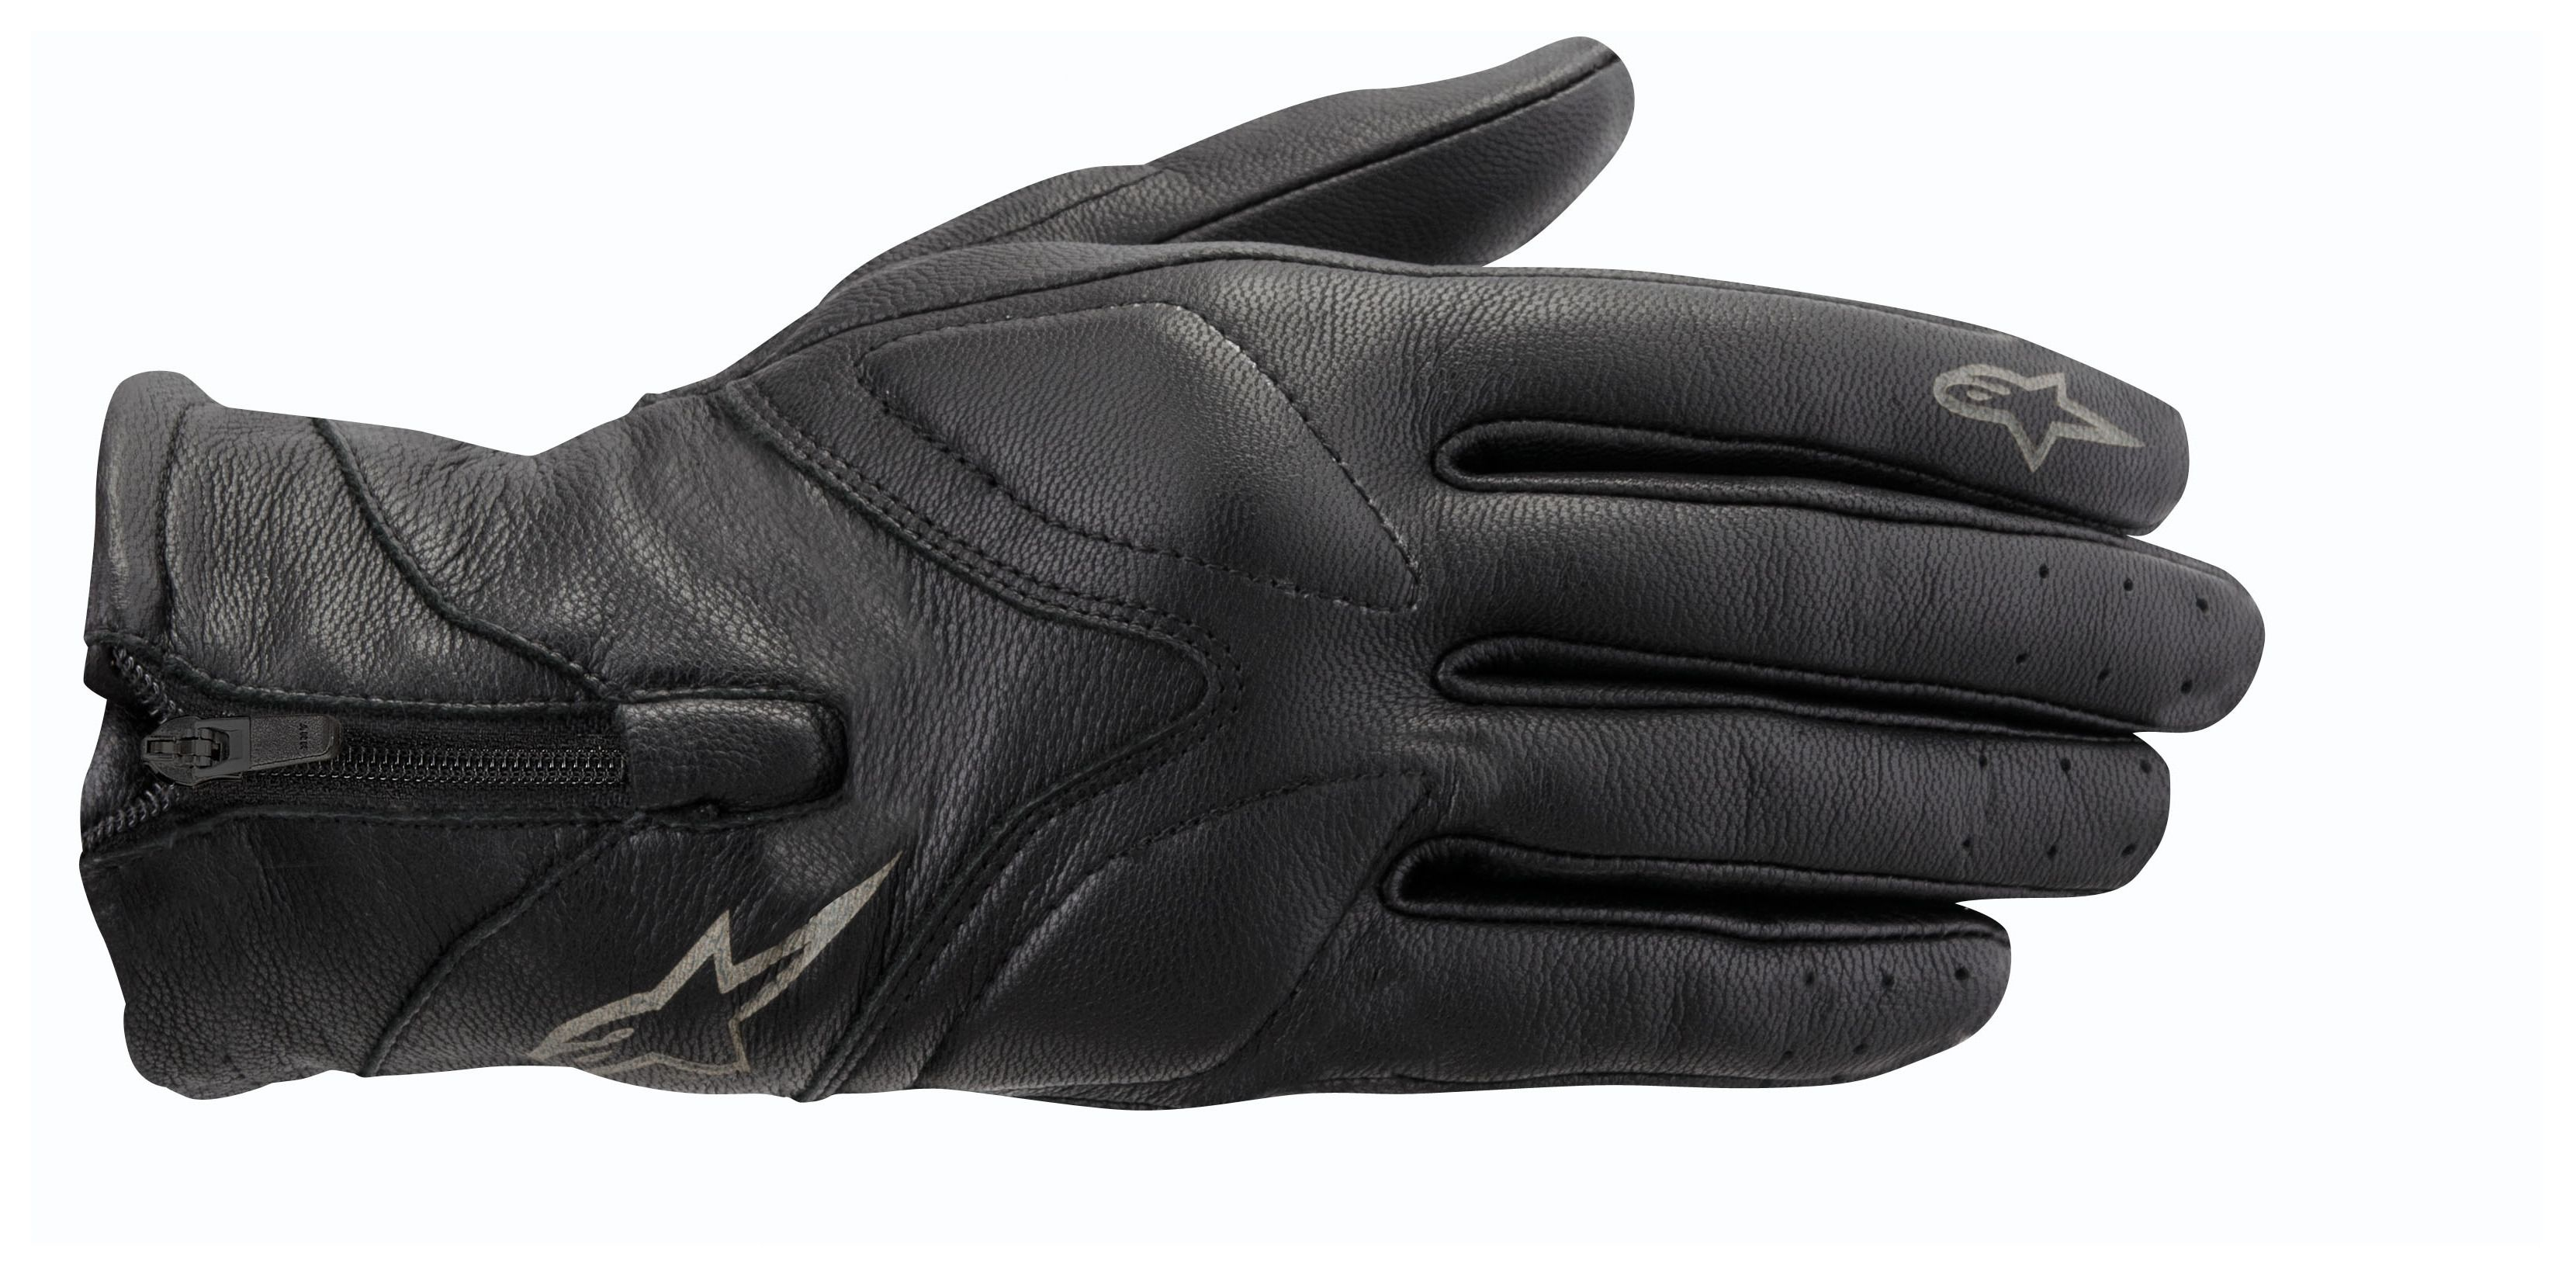 Black leather gloves brisbane - Black Leather Gloves Brisbane 22